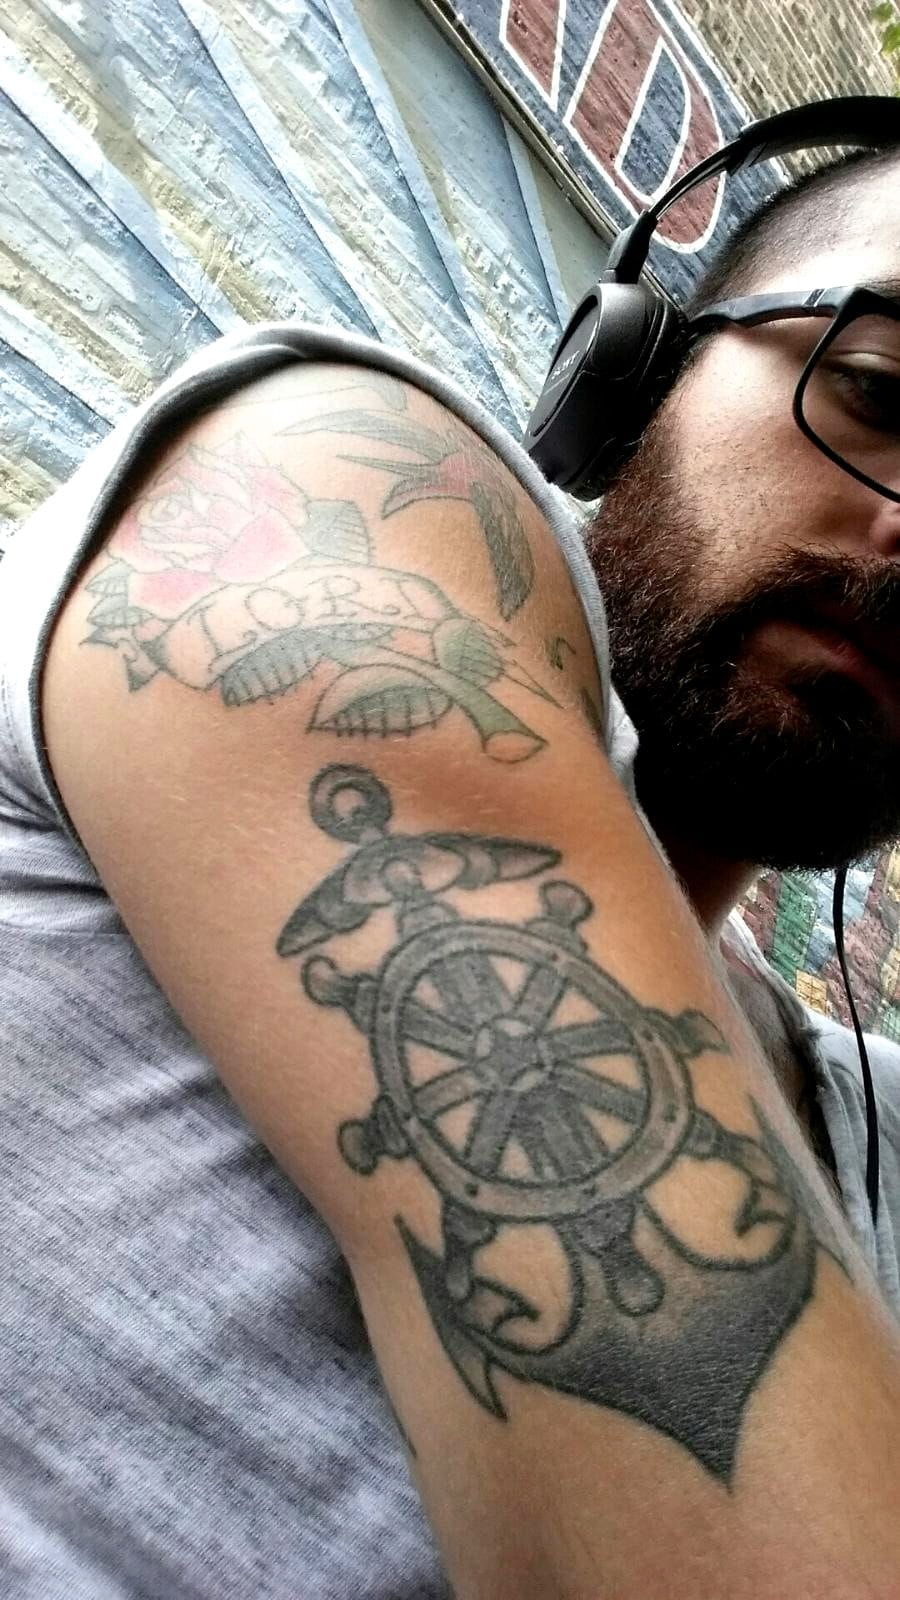 Hebrews 6:19 anchor done at Old Town Tatu in Chicago Illinois. The bold will hold.